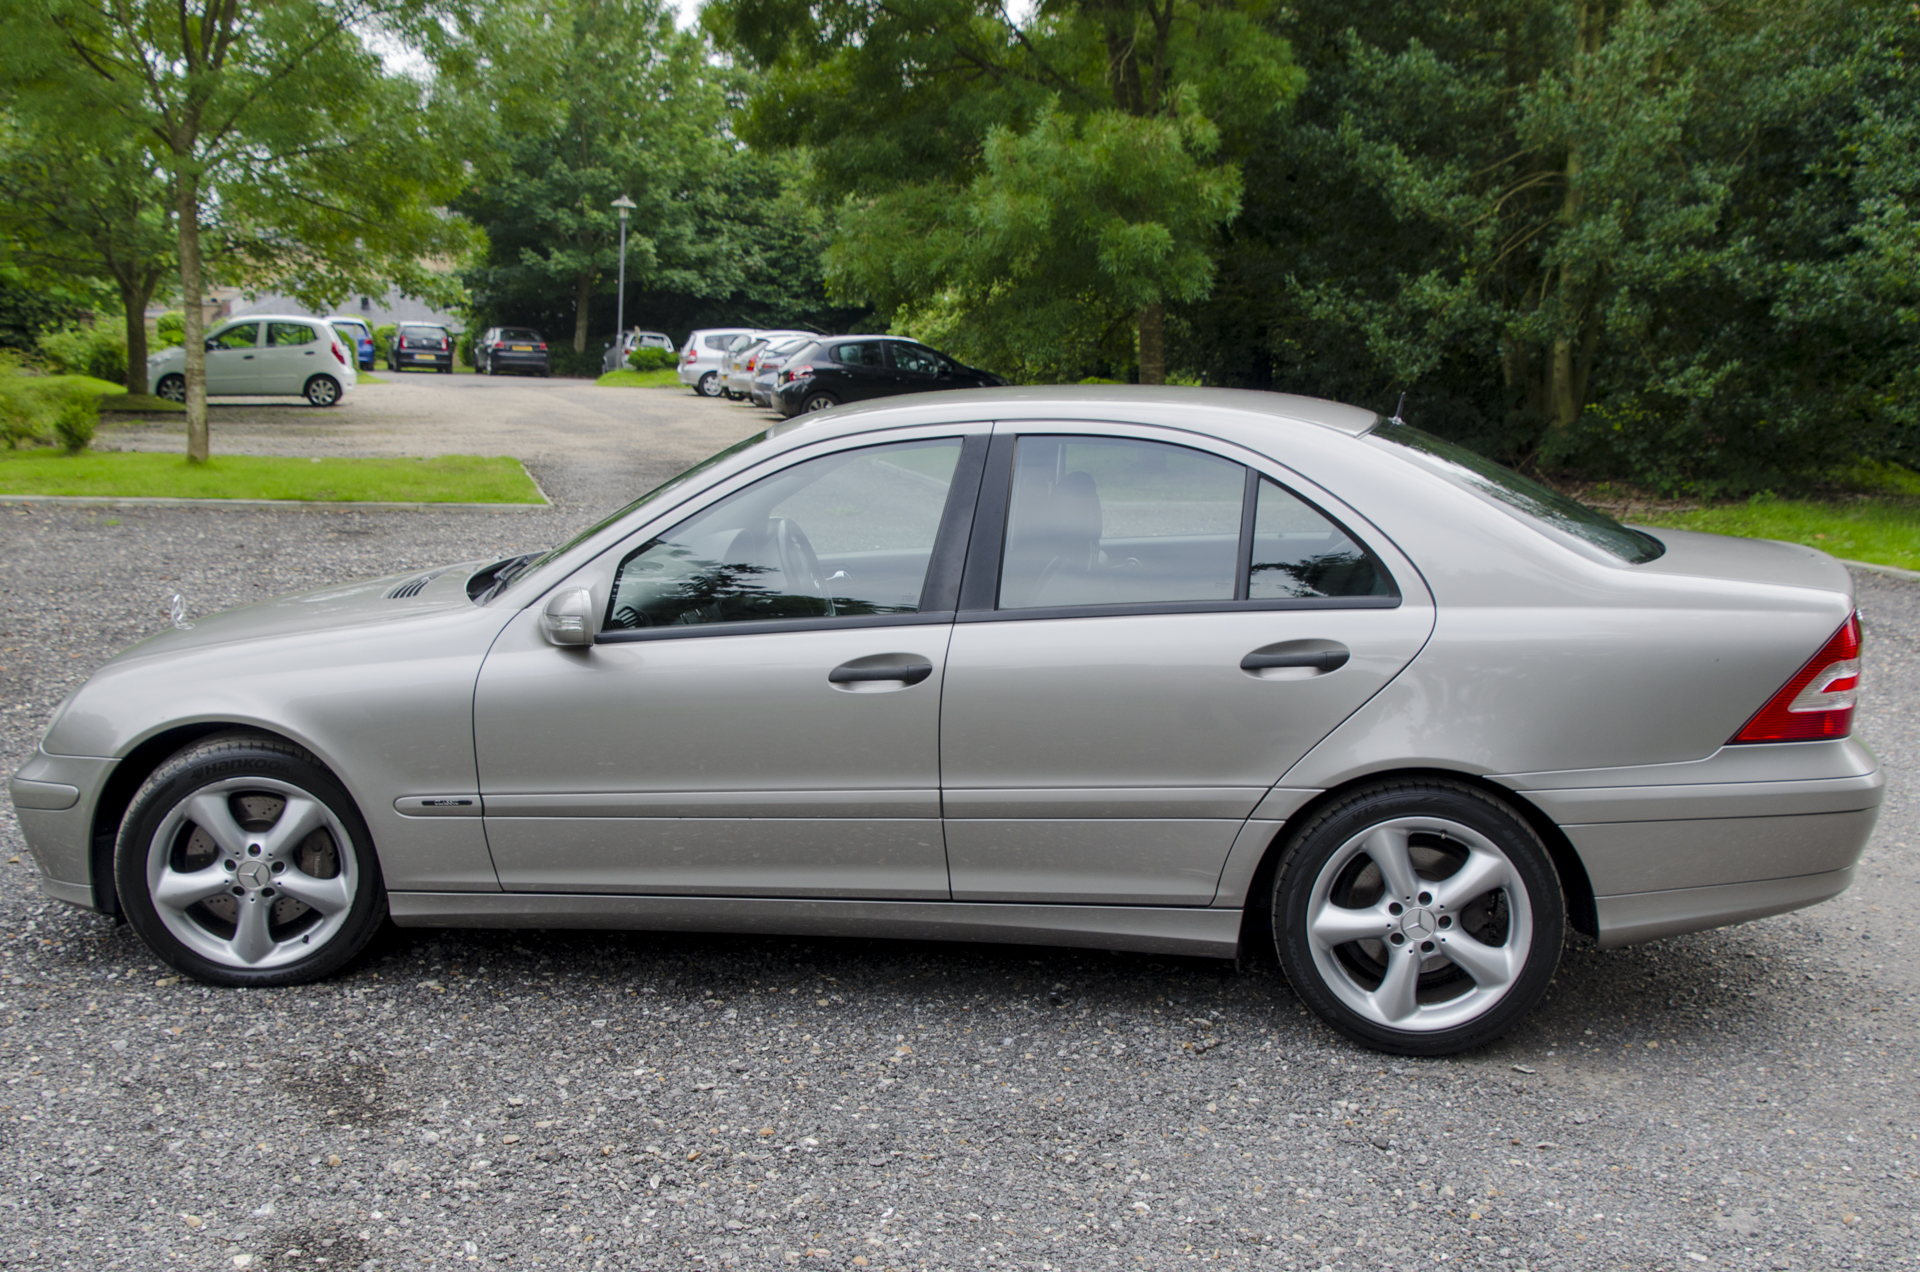 Mercedes benz c270 for sale turnbull oliver for Used mercedes benz sale